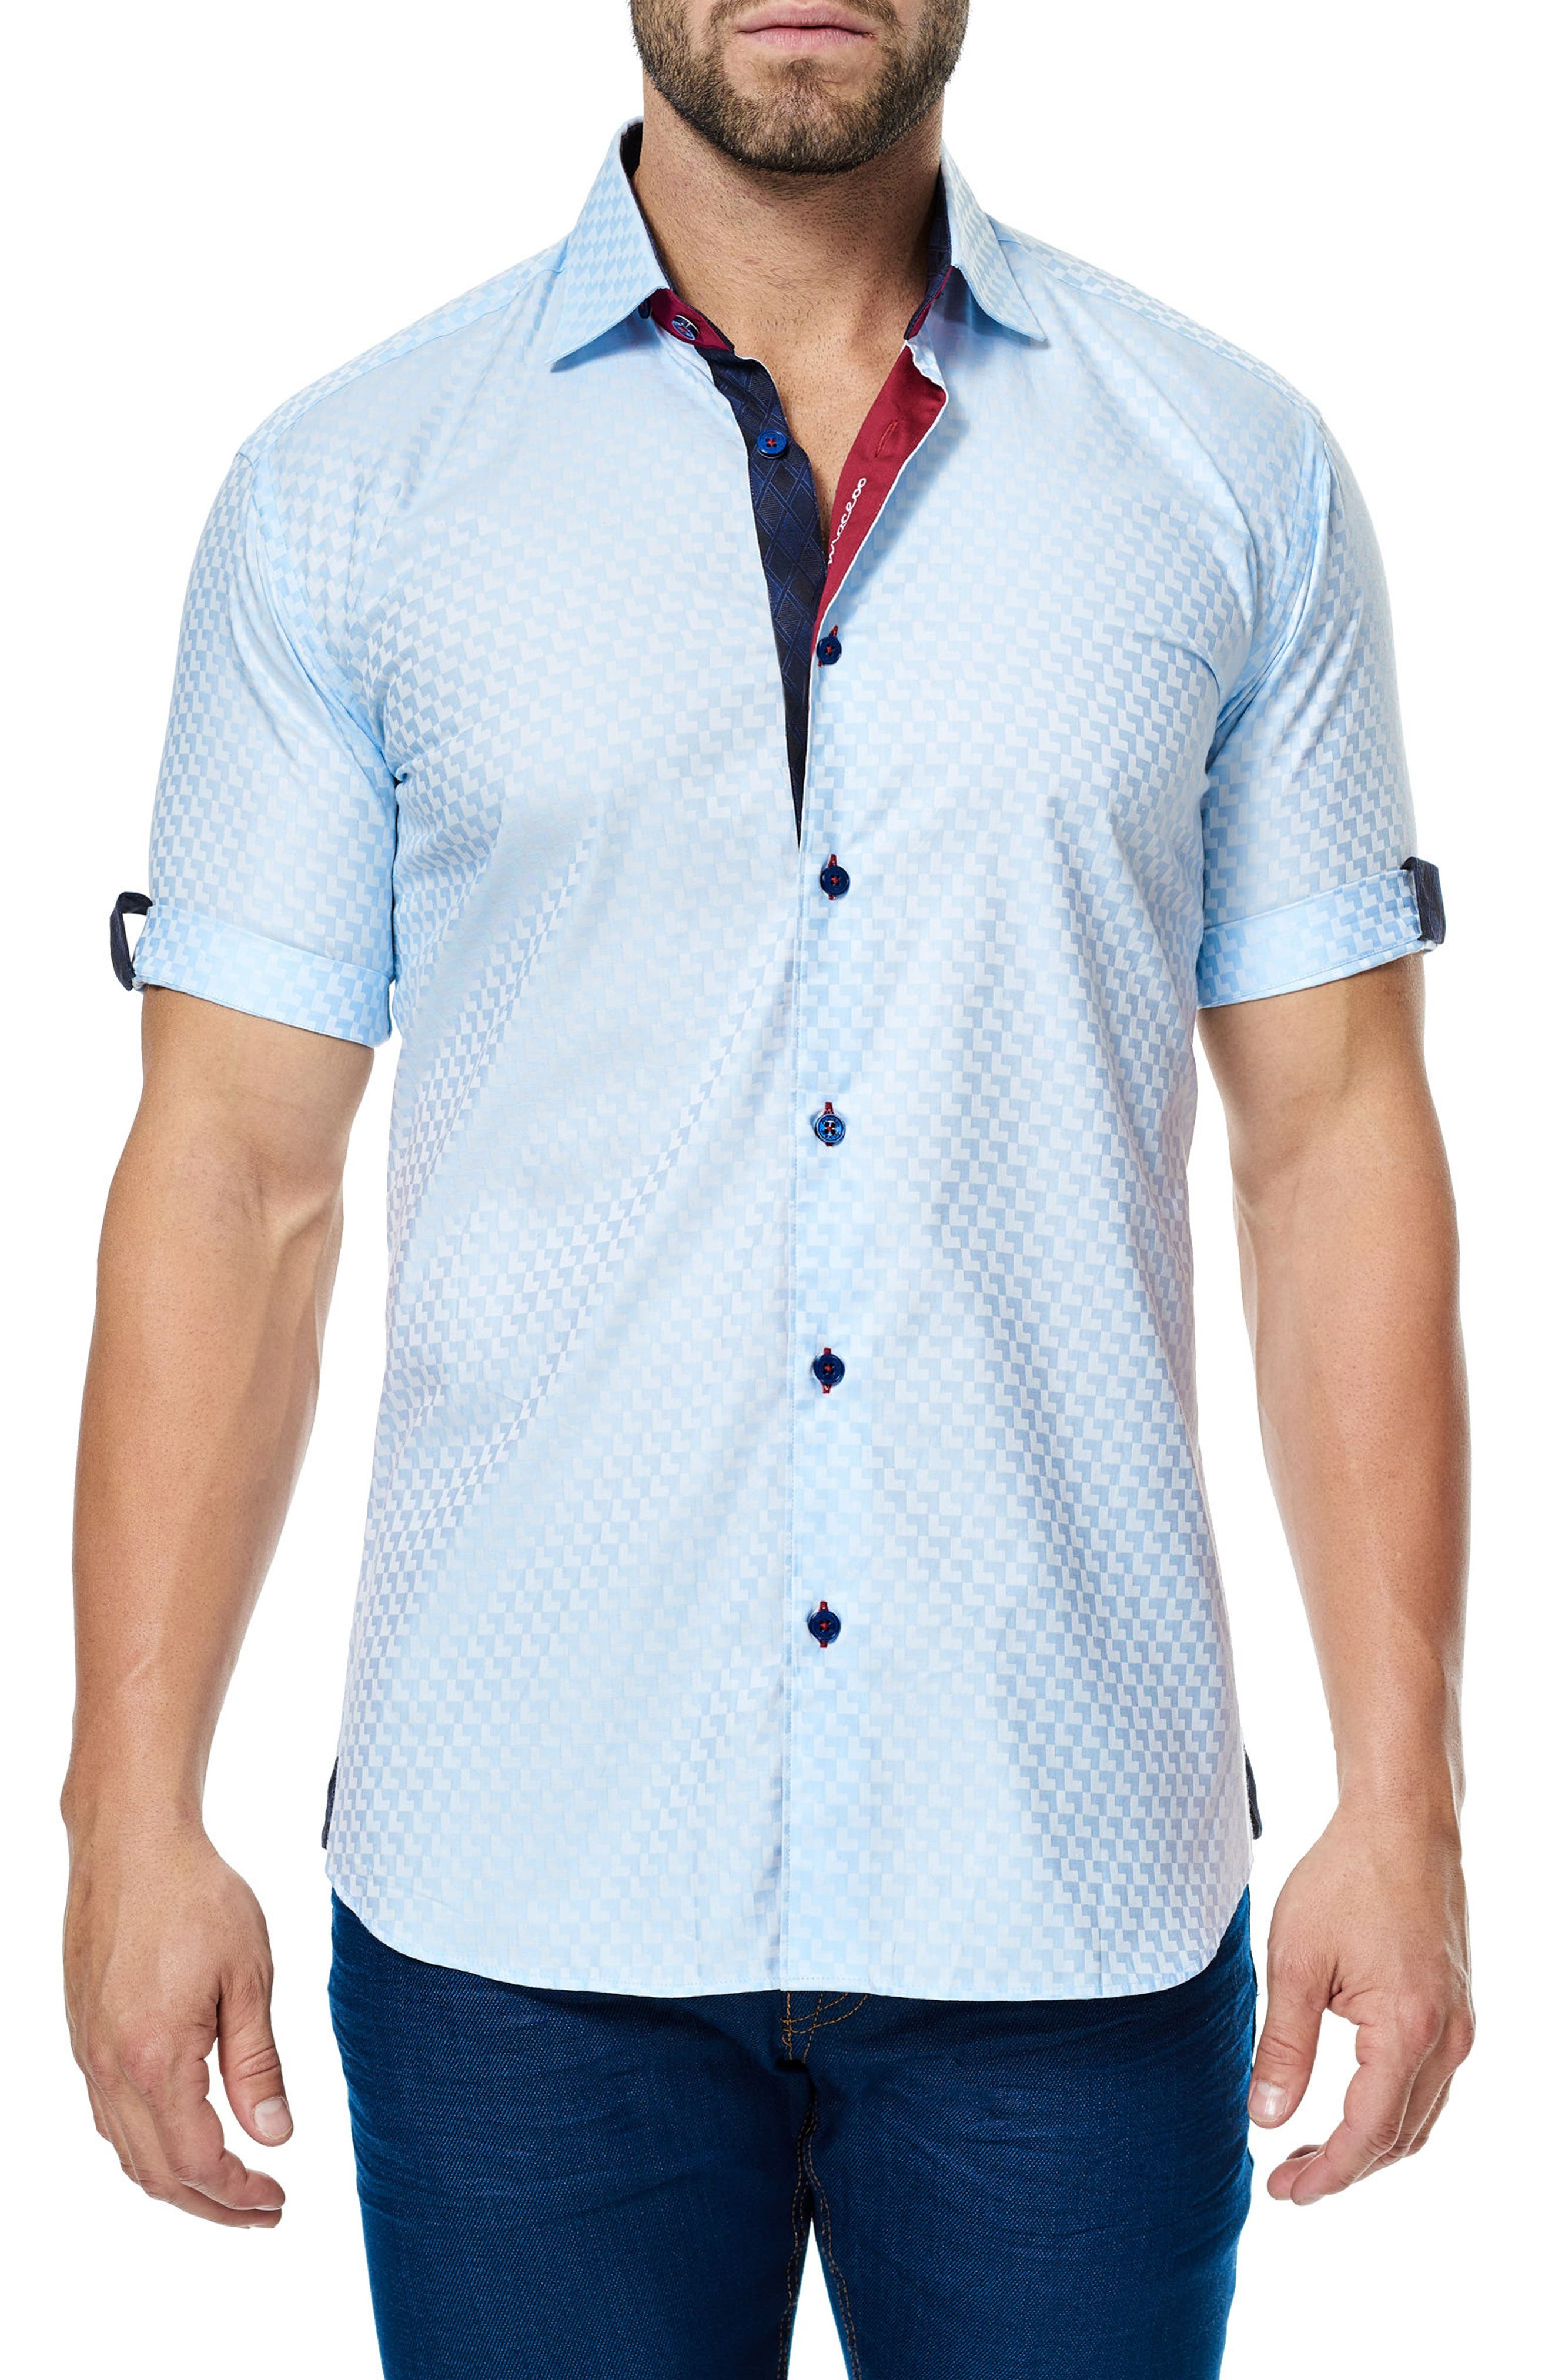 Alternate Image 1 Selected - Maceoo Fresh Jacquard Sport Shirt